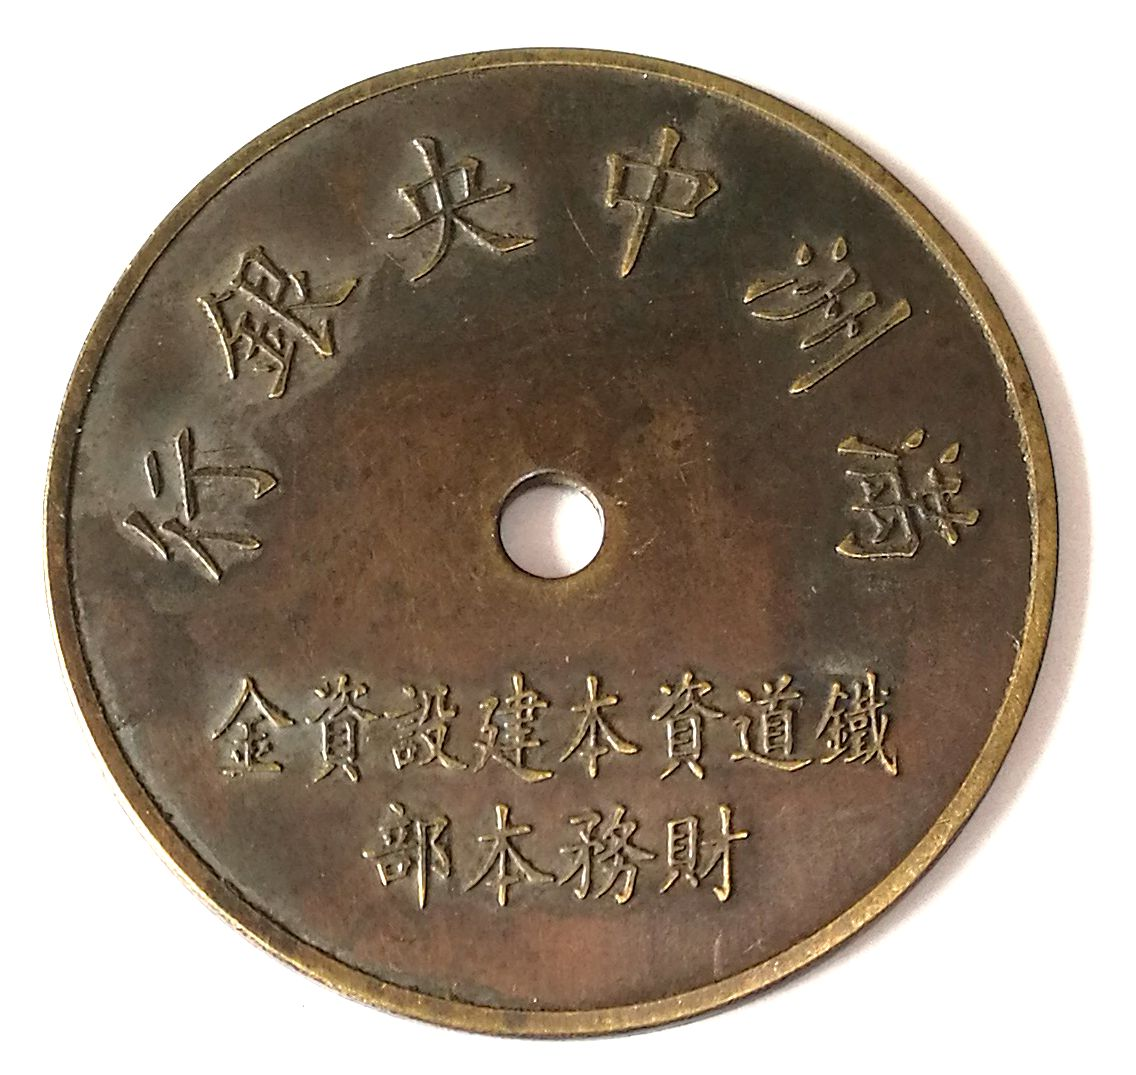 BT463, Railway Line Construction Fund, Manchukuo Token, Without Face Value 1944